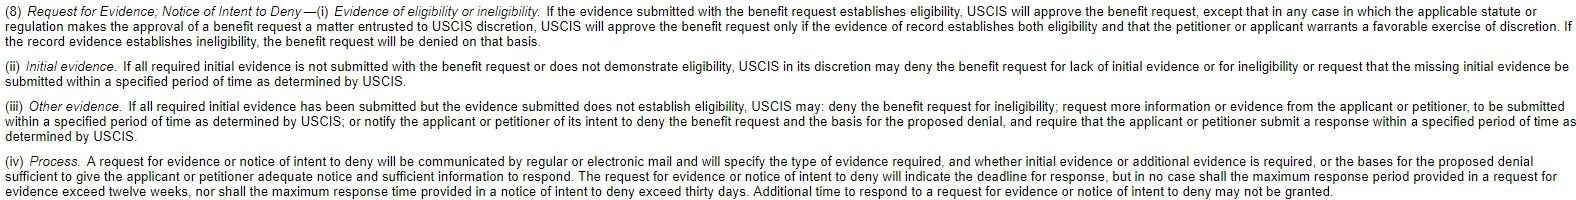 The Case Against the New USCIS Policy on Denials Without